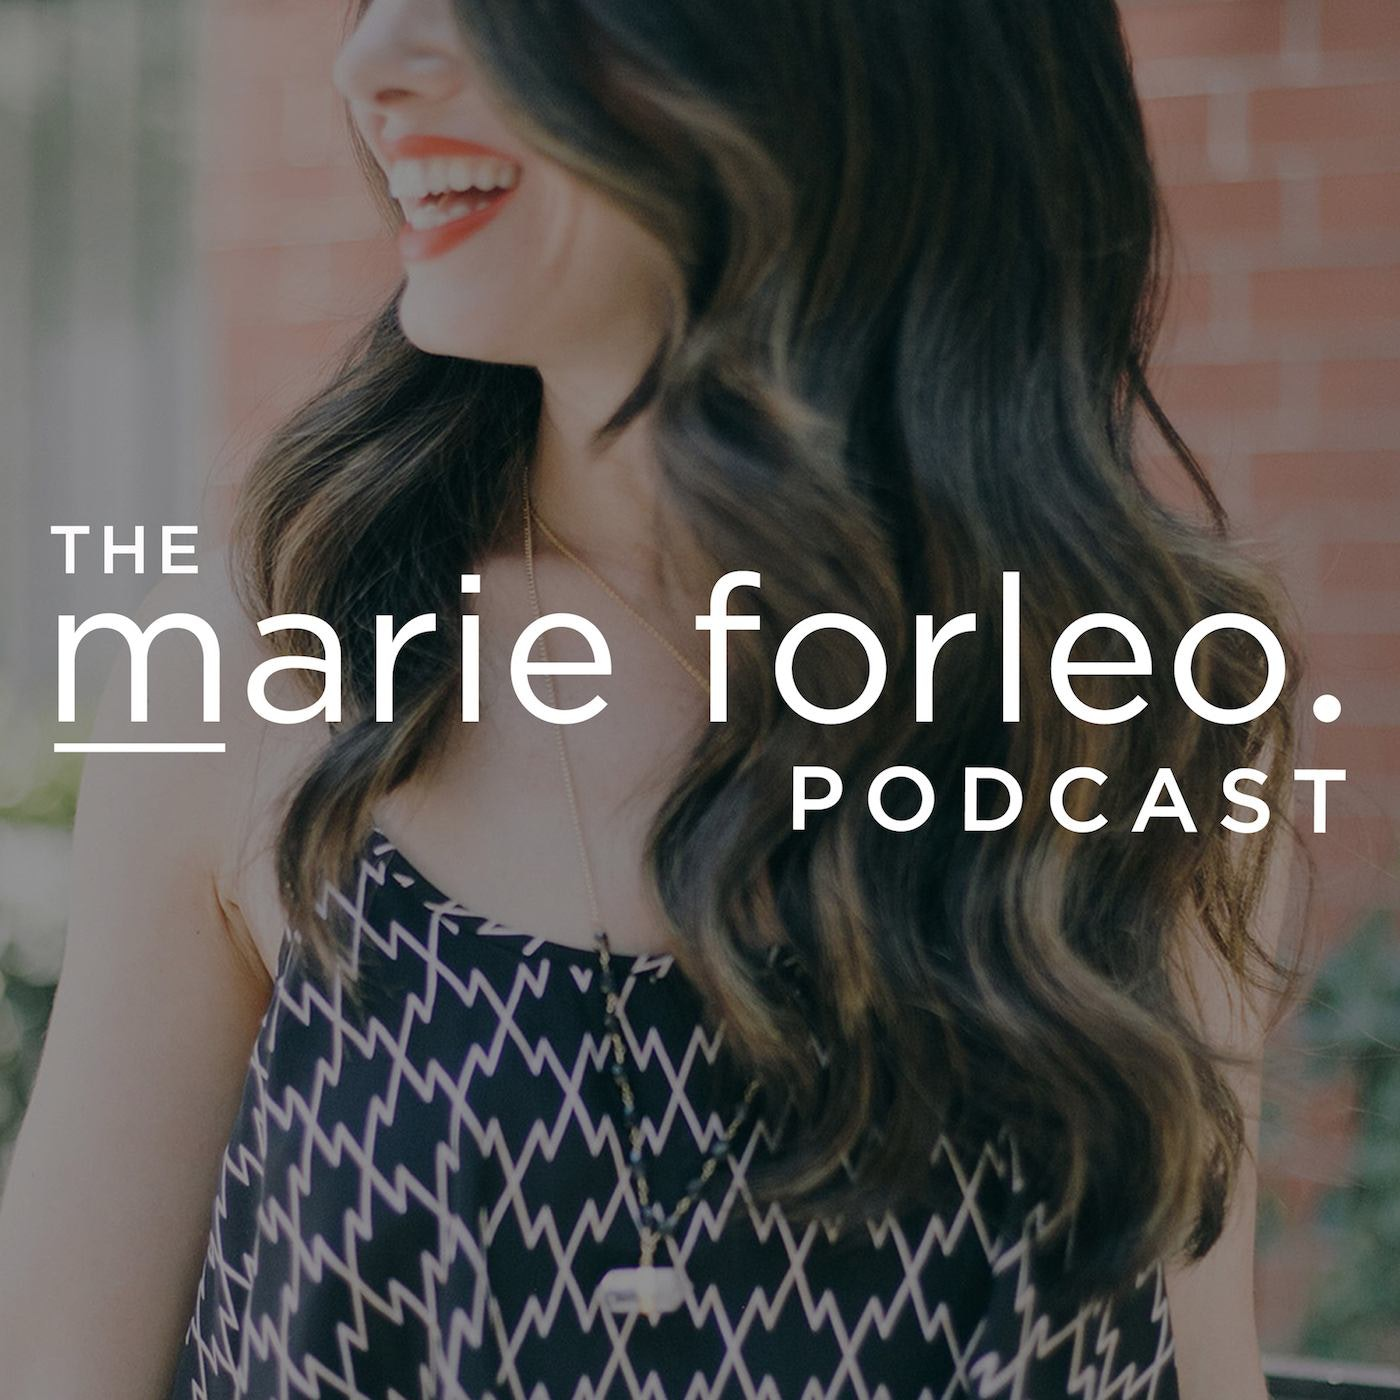 The Marie Forleo Podcats